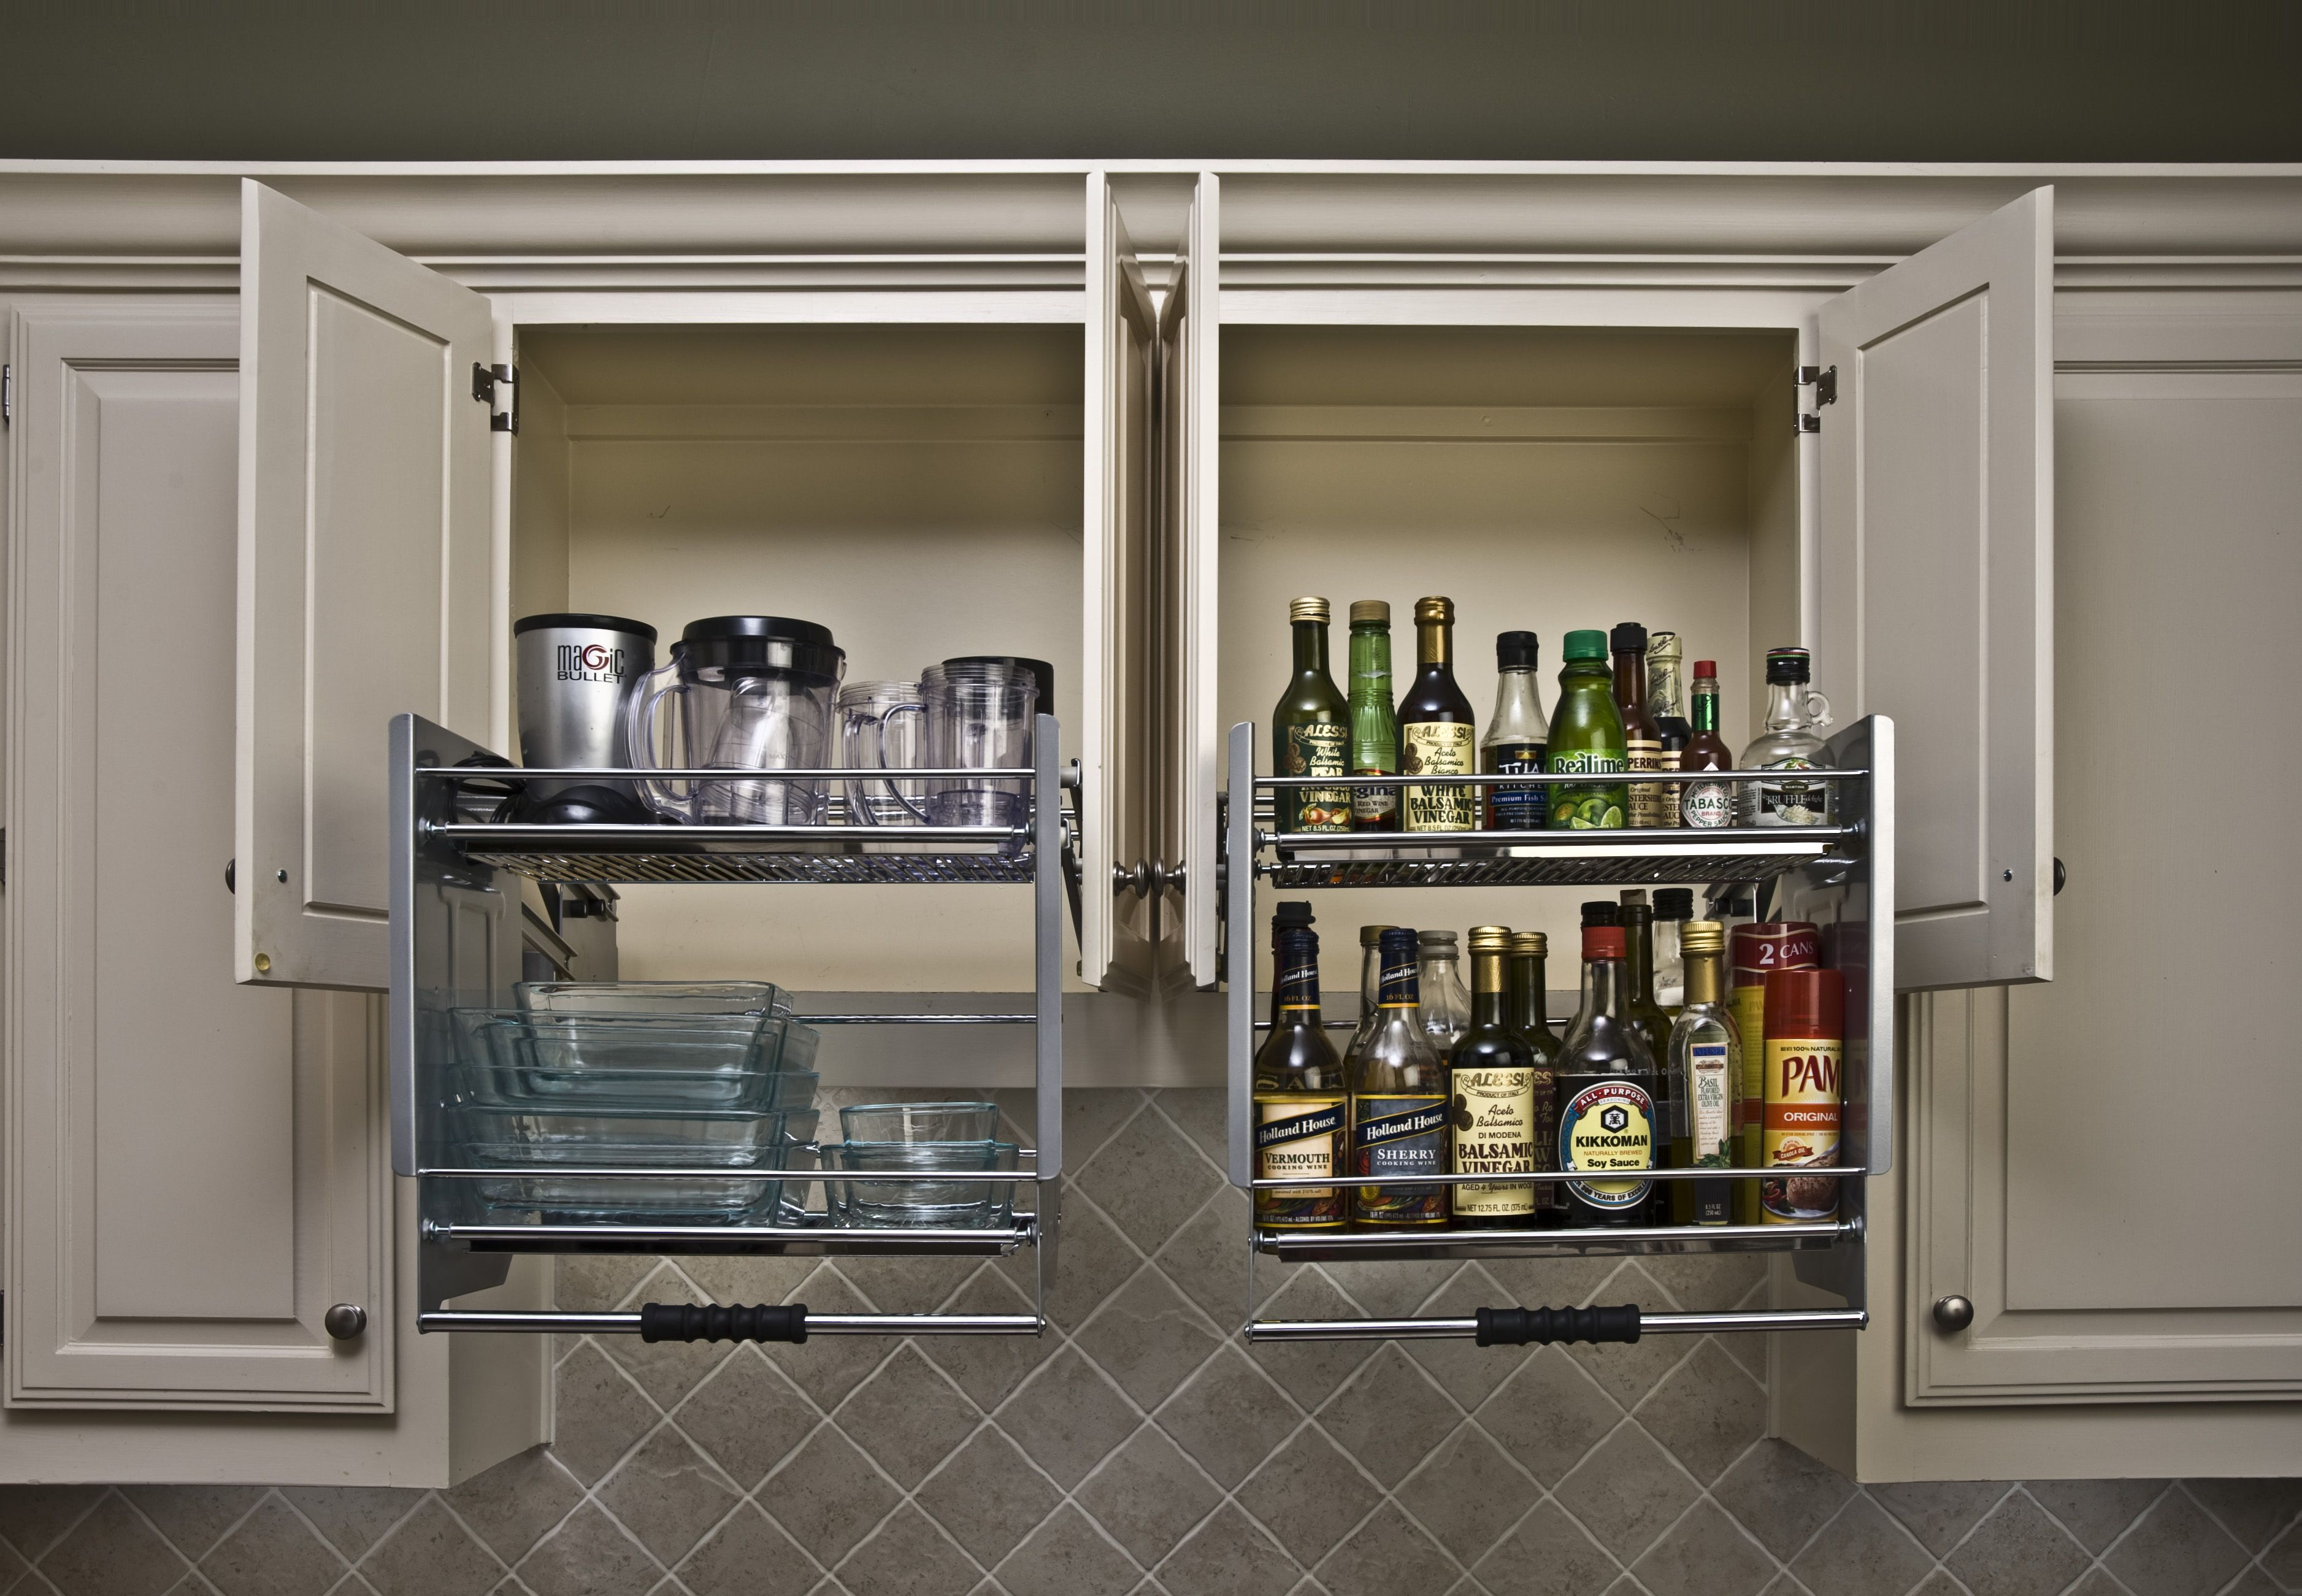 Kitchen Shelves Instead Of Cabinets Shelf Genie Pull Down Shelves Finally A Solution For